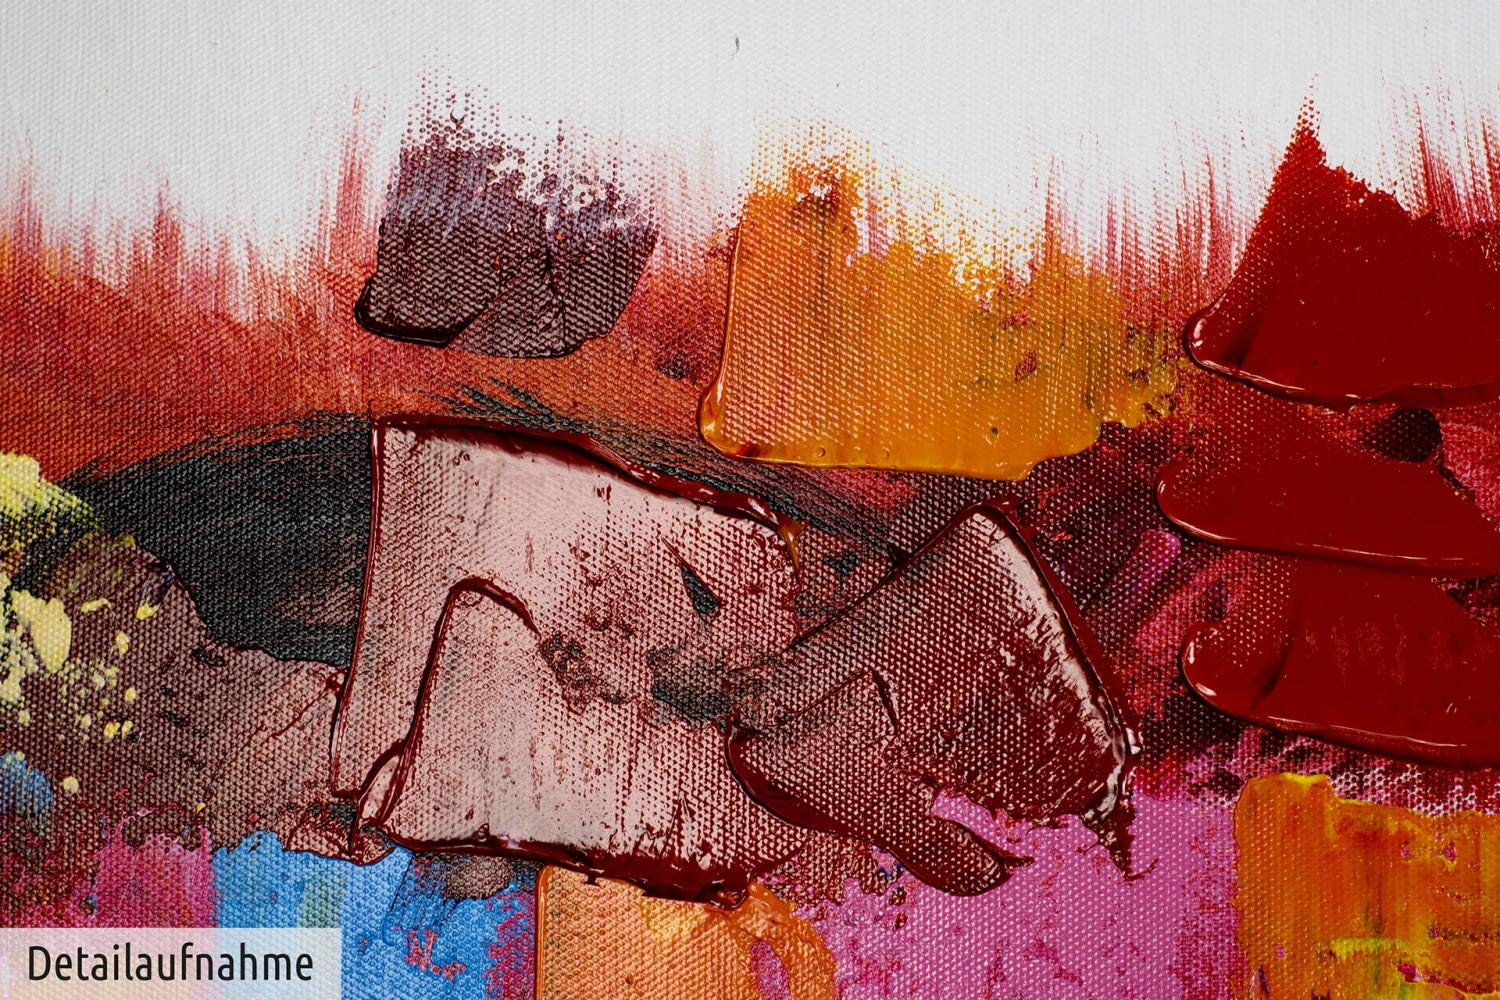 KunstLoft/® Painting Colour display on the horizon 47x16inches Modern art acrylic mural on frame Abstract colours against a white backdrop Large original hand-painted canvas